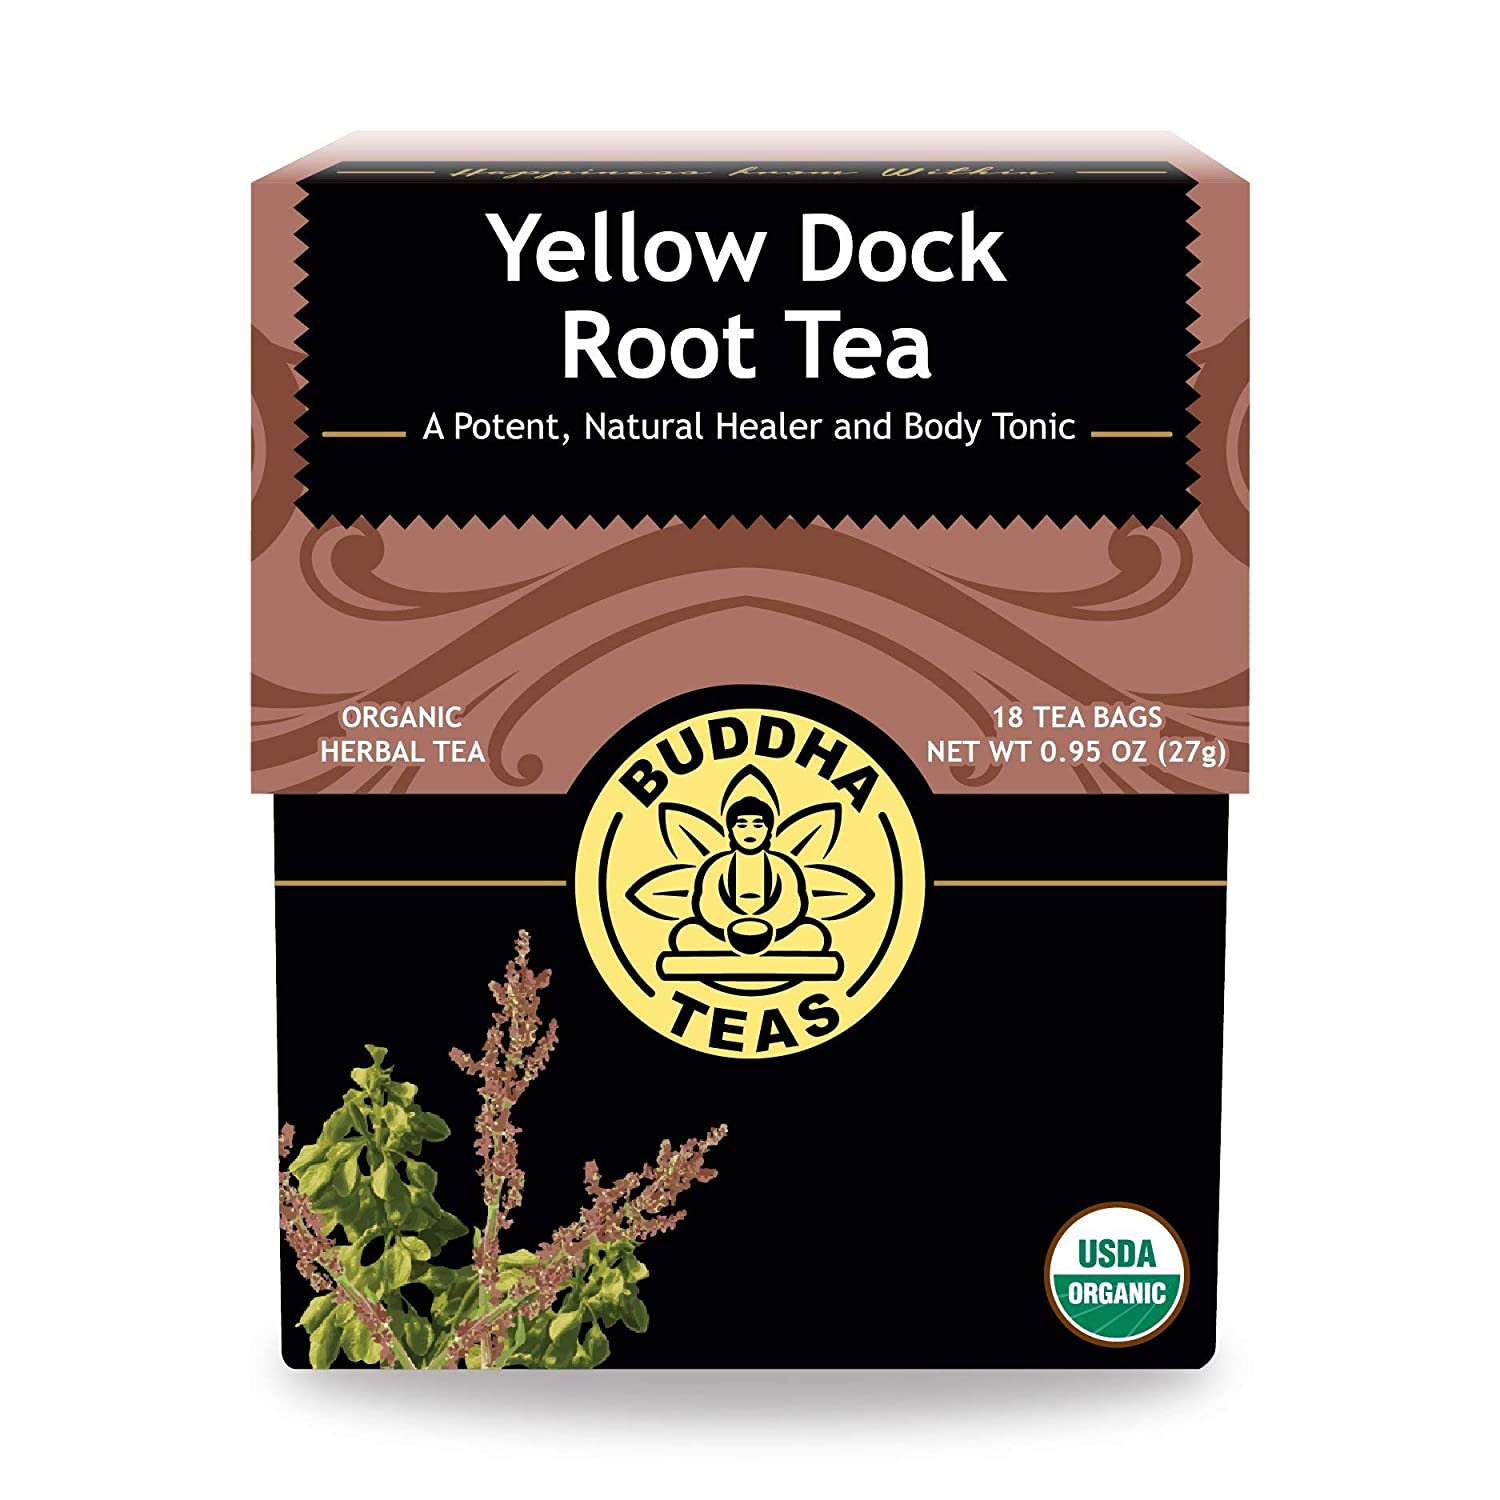 Organic Yellow Dock Root Tea – 18 Bleach-Free Tea Bags – Caffeine-Free Tea, Powerful Detoxifier That Supports a Healthy Gastrointestinal System, Good Source of Vitamins, Kosher